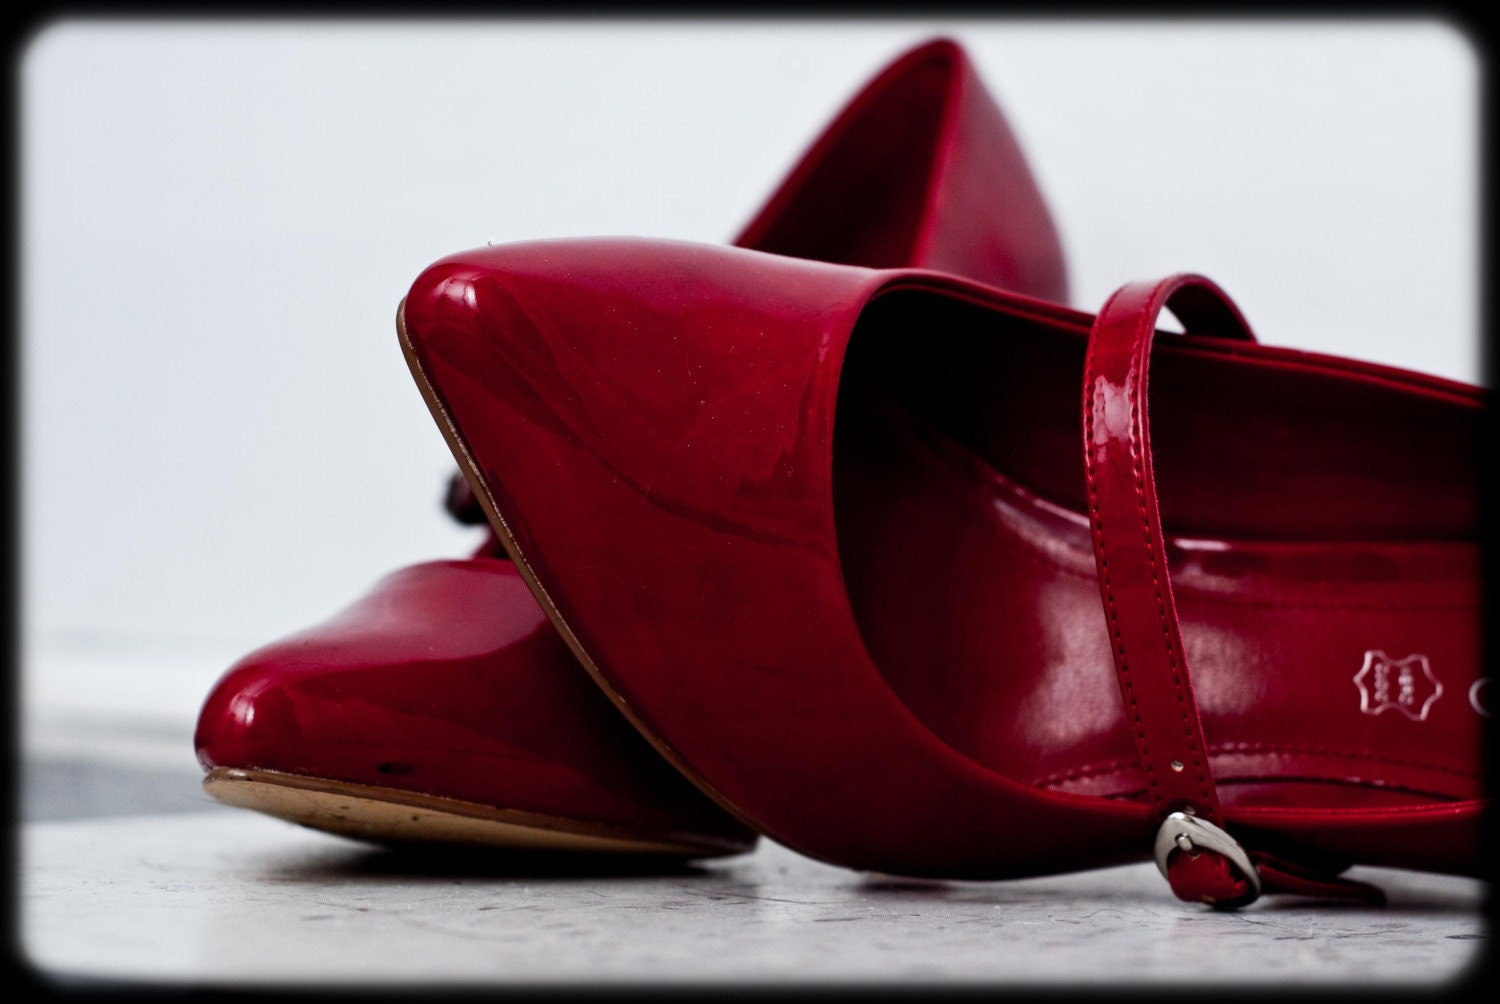 Red Shoes - 8x10 print - GeekgirlyPhotography